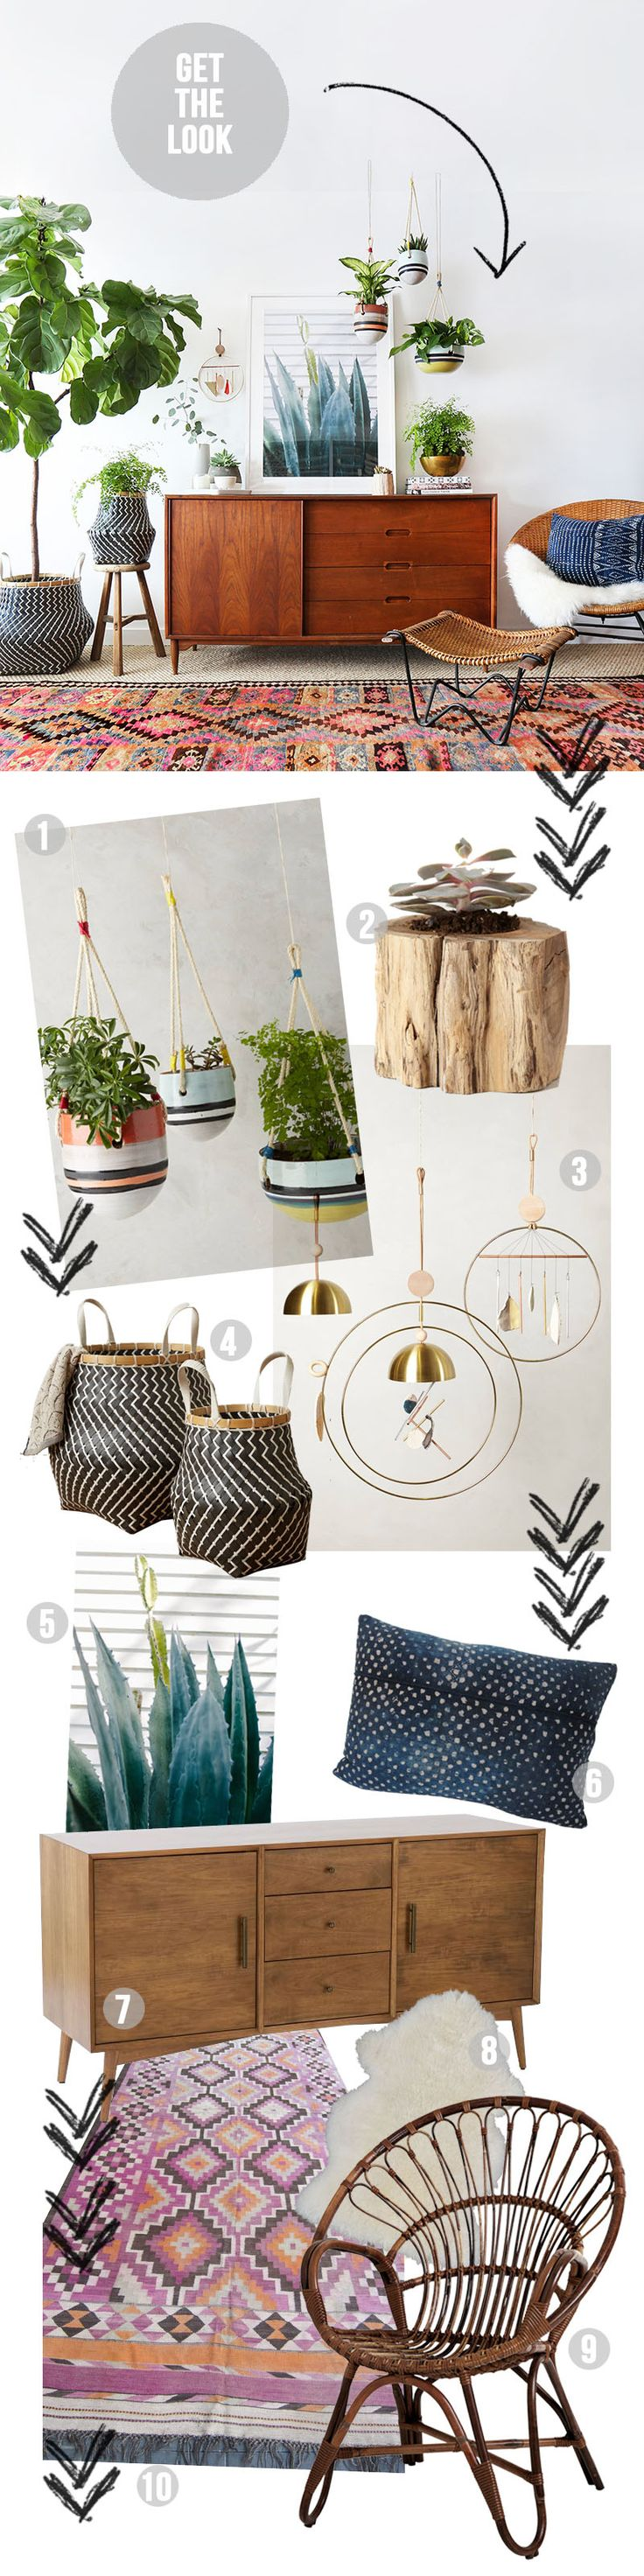 Light style for living room and a lot of light  Boho et Jungle - La touche d'Agathe - eclectic plant green hanging Bohemians Tropical bohème garland indoor greenery Boho vintage leaves palm botanical deco living room bedroom decoration intérieure